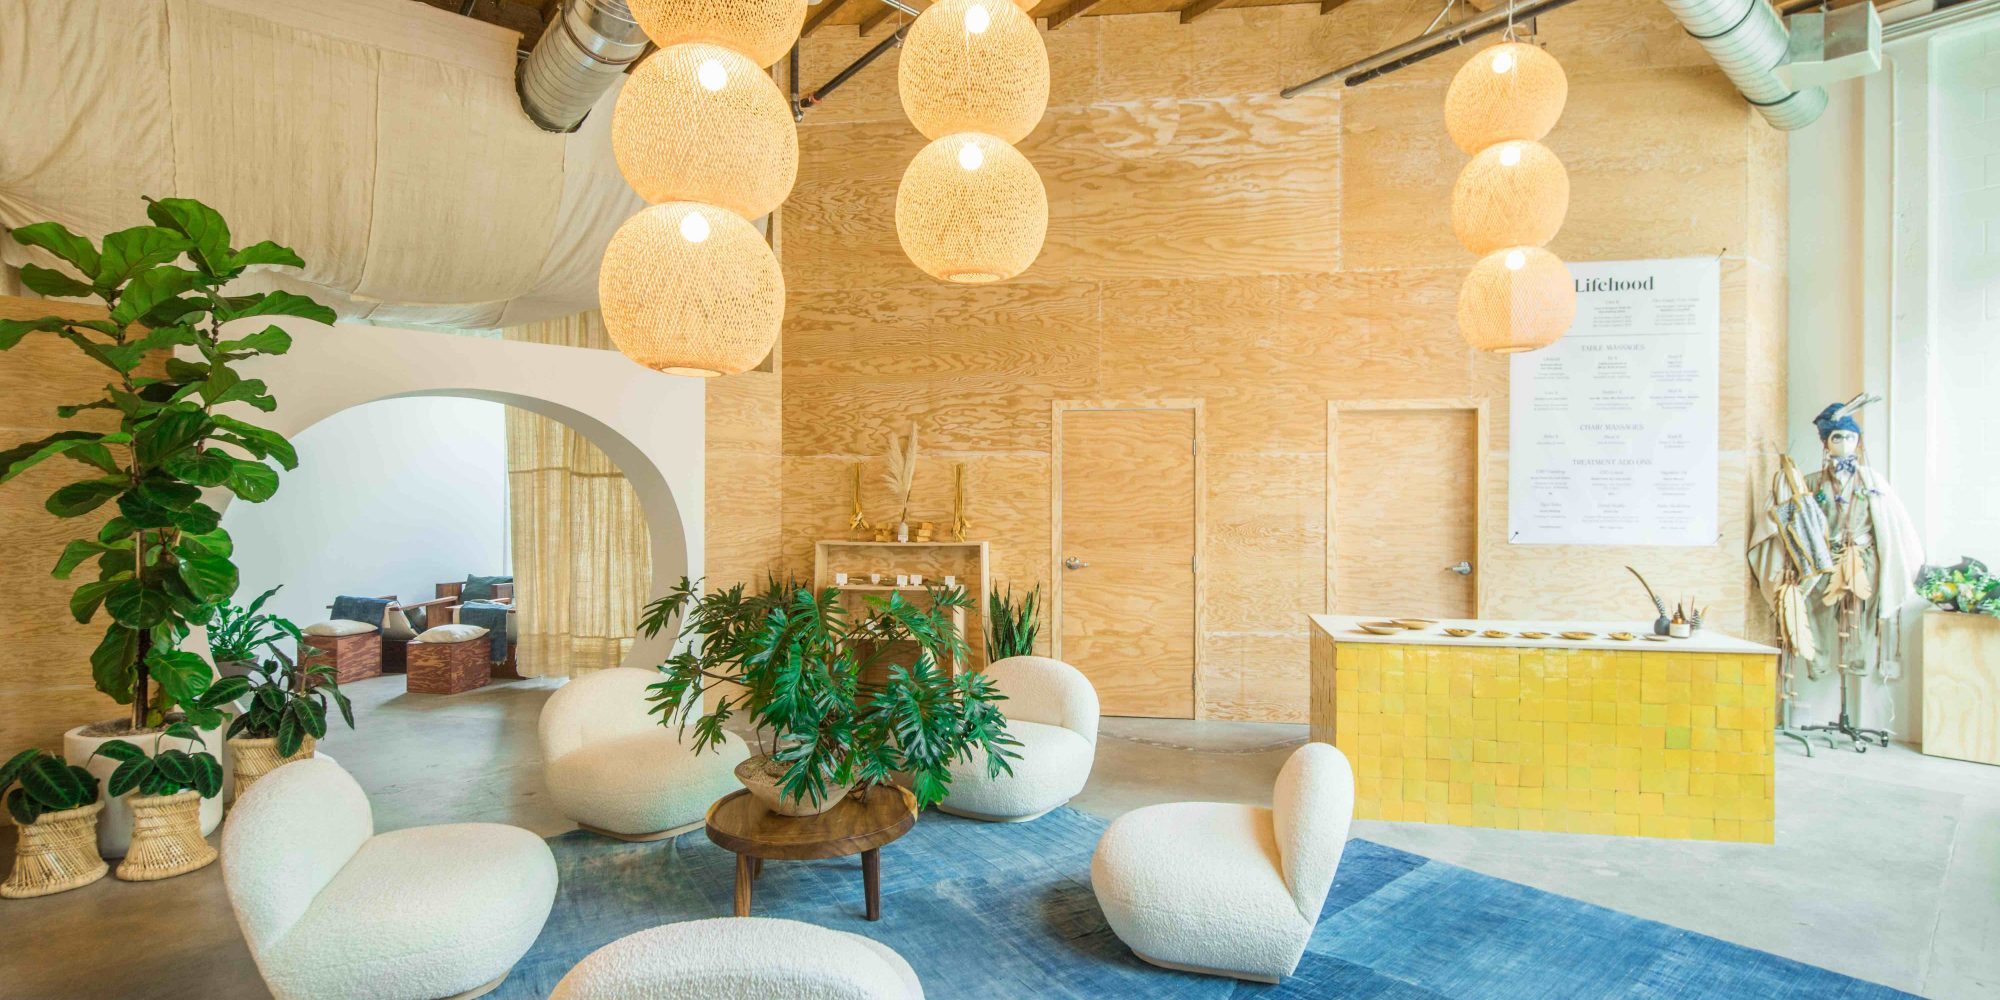 Lifehood, A New Spa Concept From The Now's Co-Founder, Has A Bigger Mission Than Personal Pampering